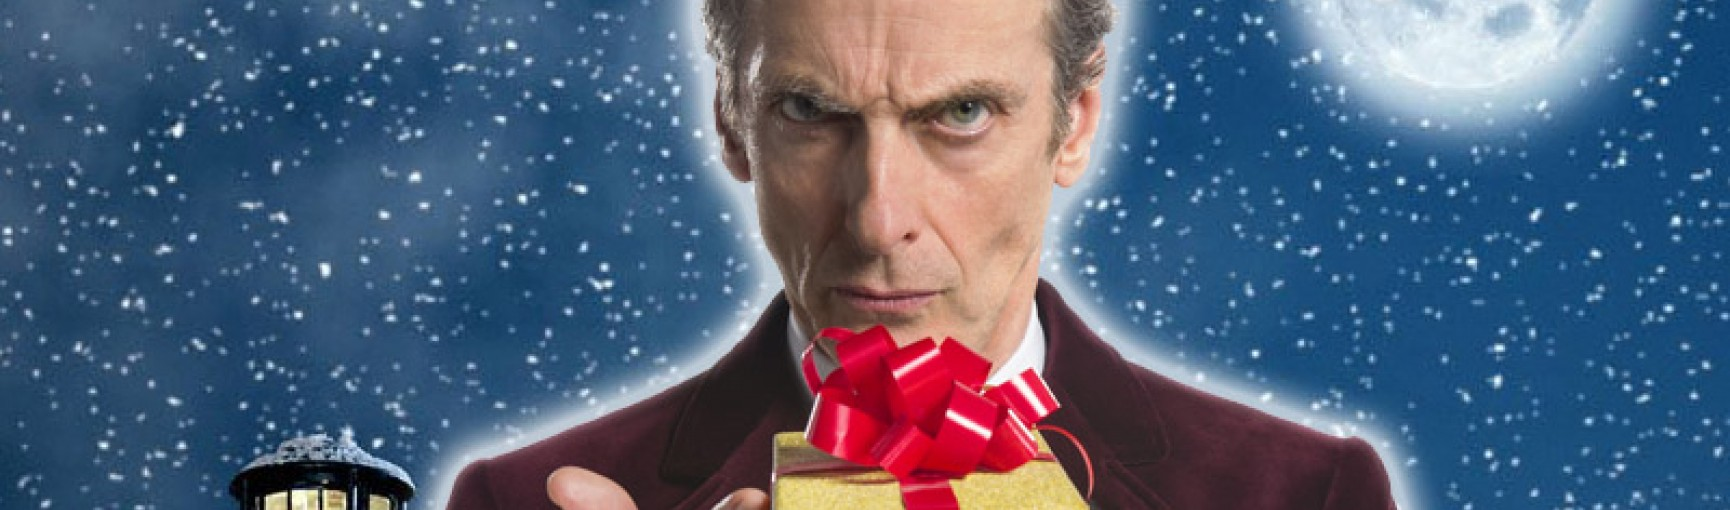 Doctor Who Christmas Specials.A Look Back At The Doctor Who Christmas Specials Twelfth